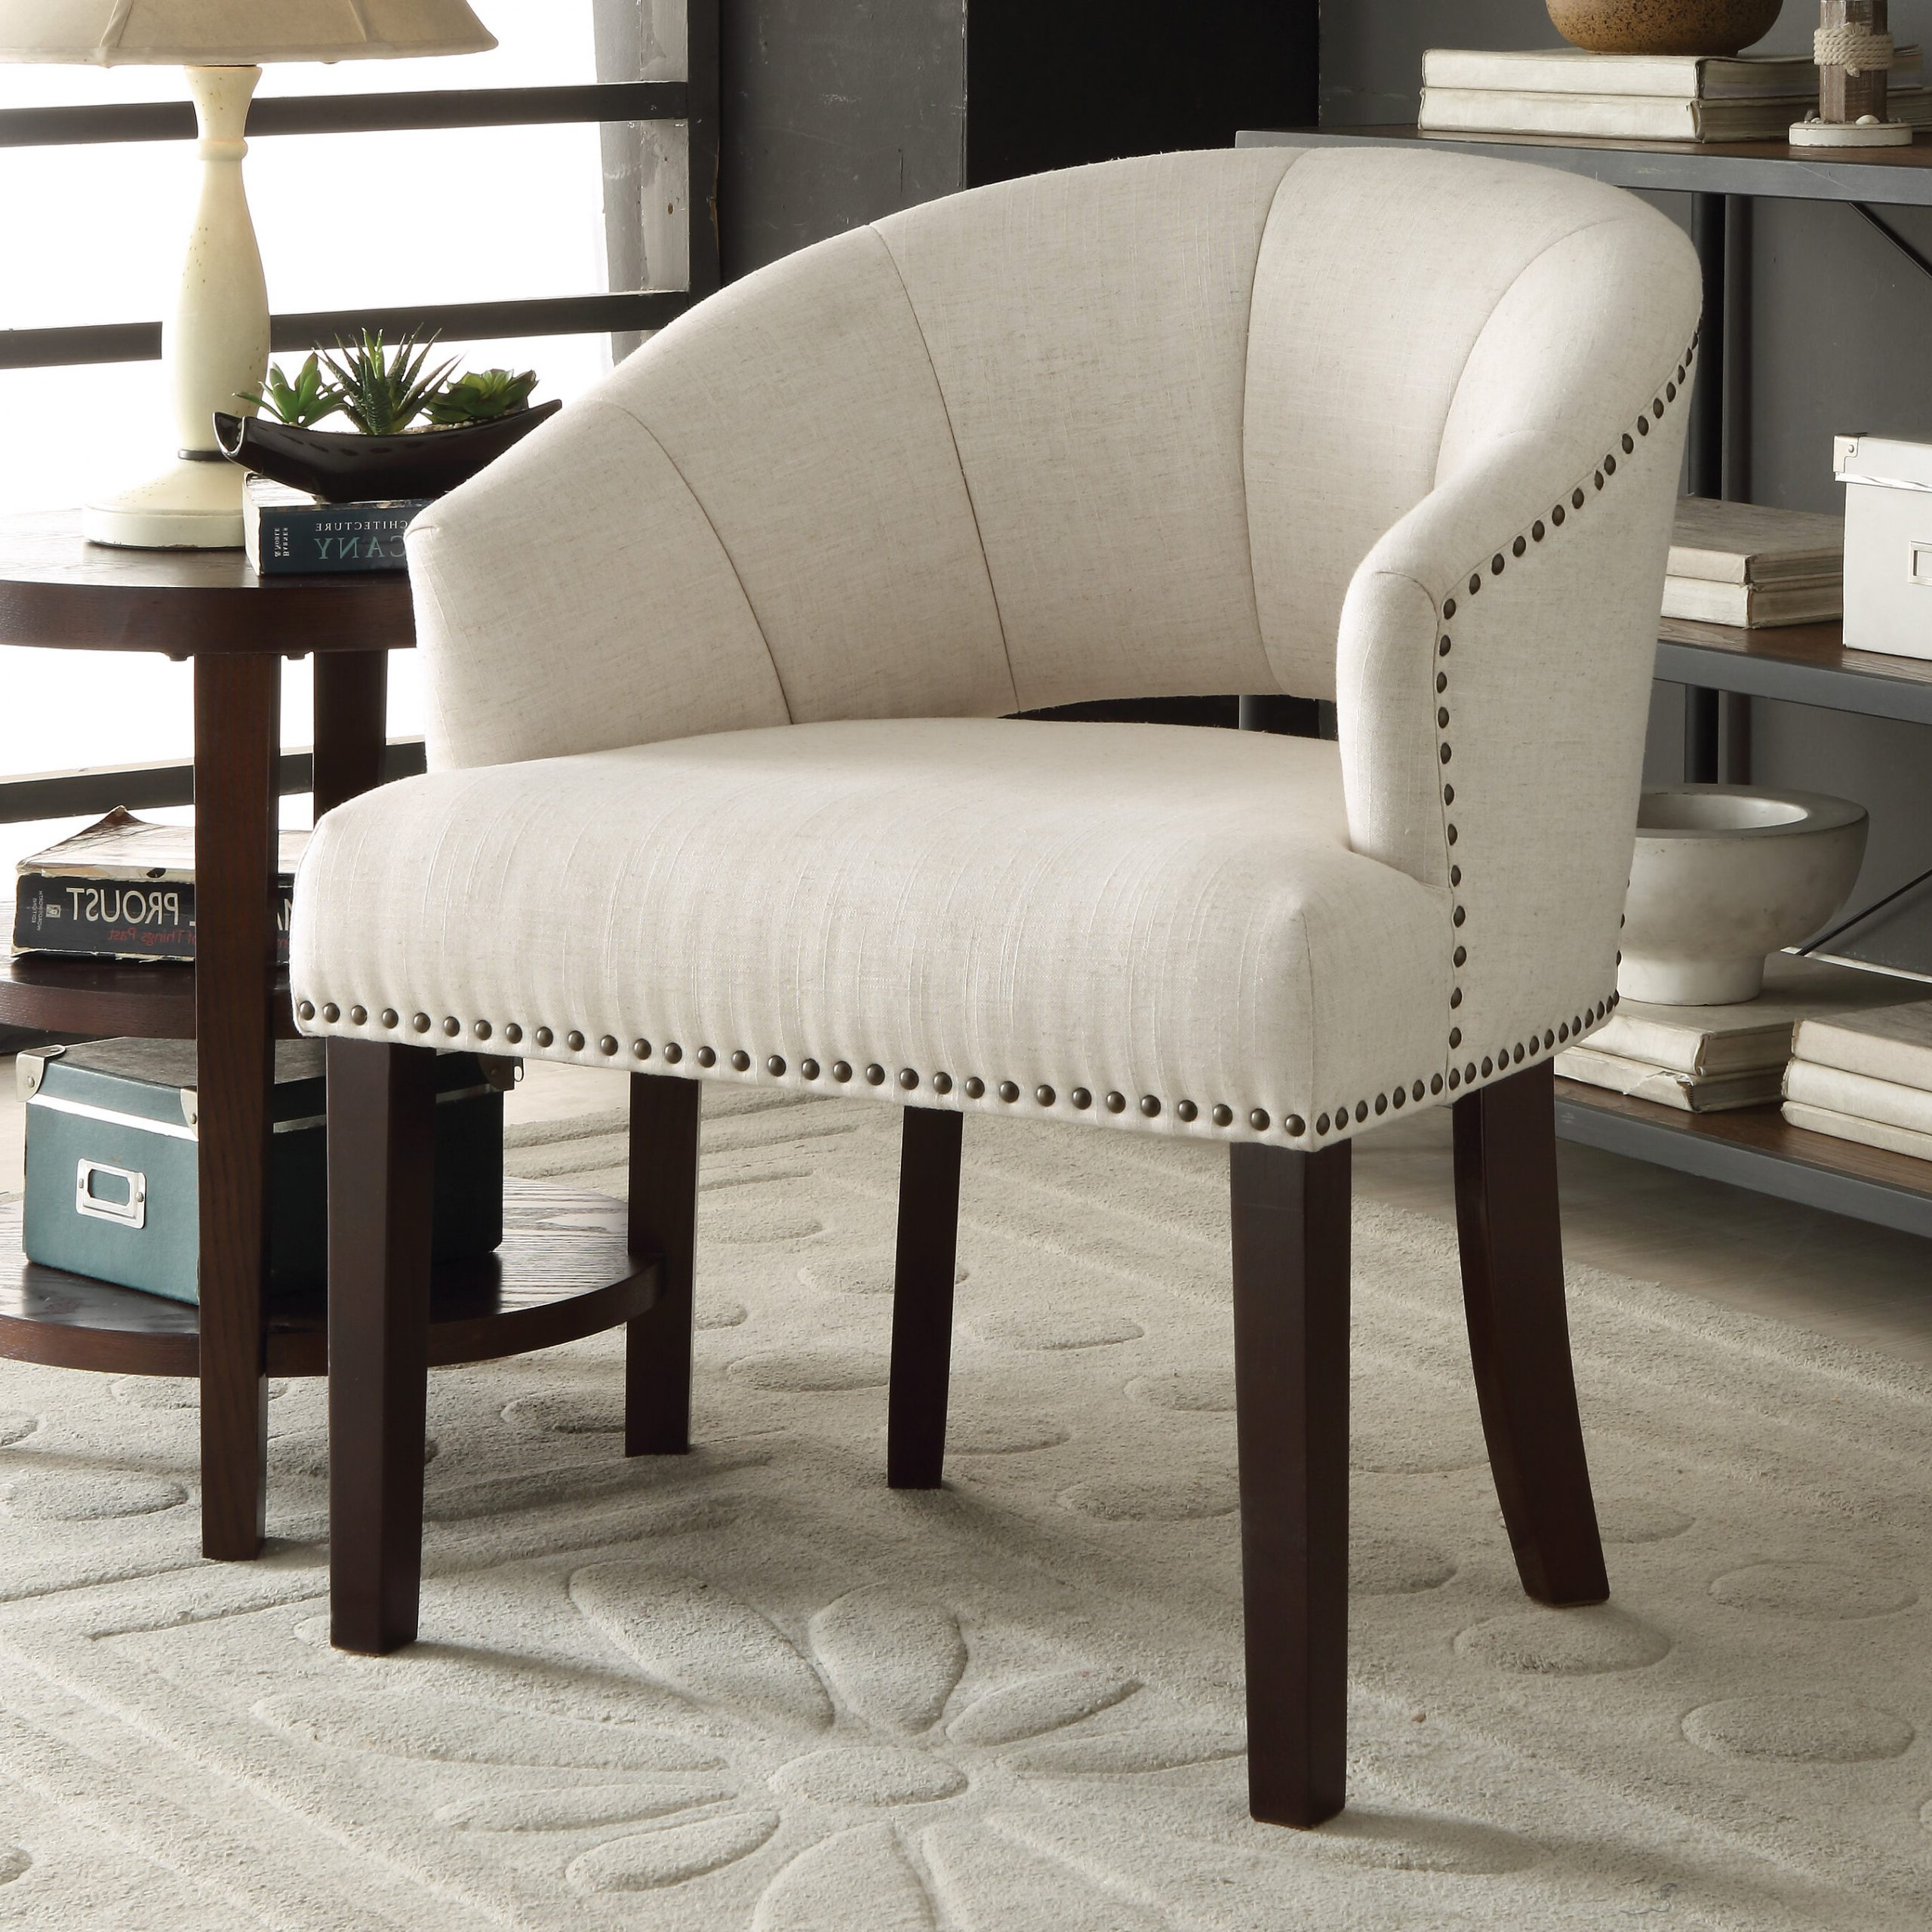 """Navin Barrel Chairs Regarding Well Liked Crown Heights 20"""" Barrel Chair (View 15 of 20)"""